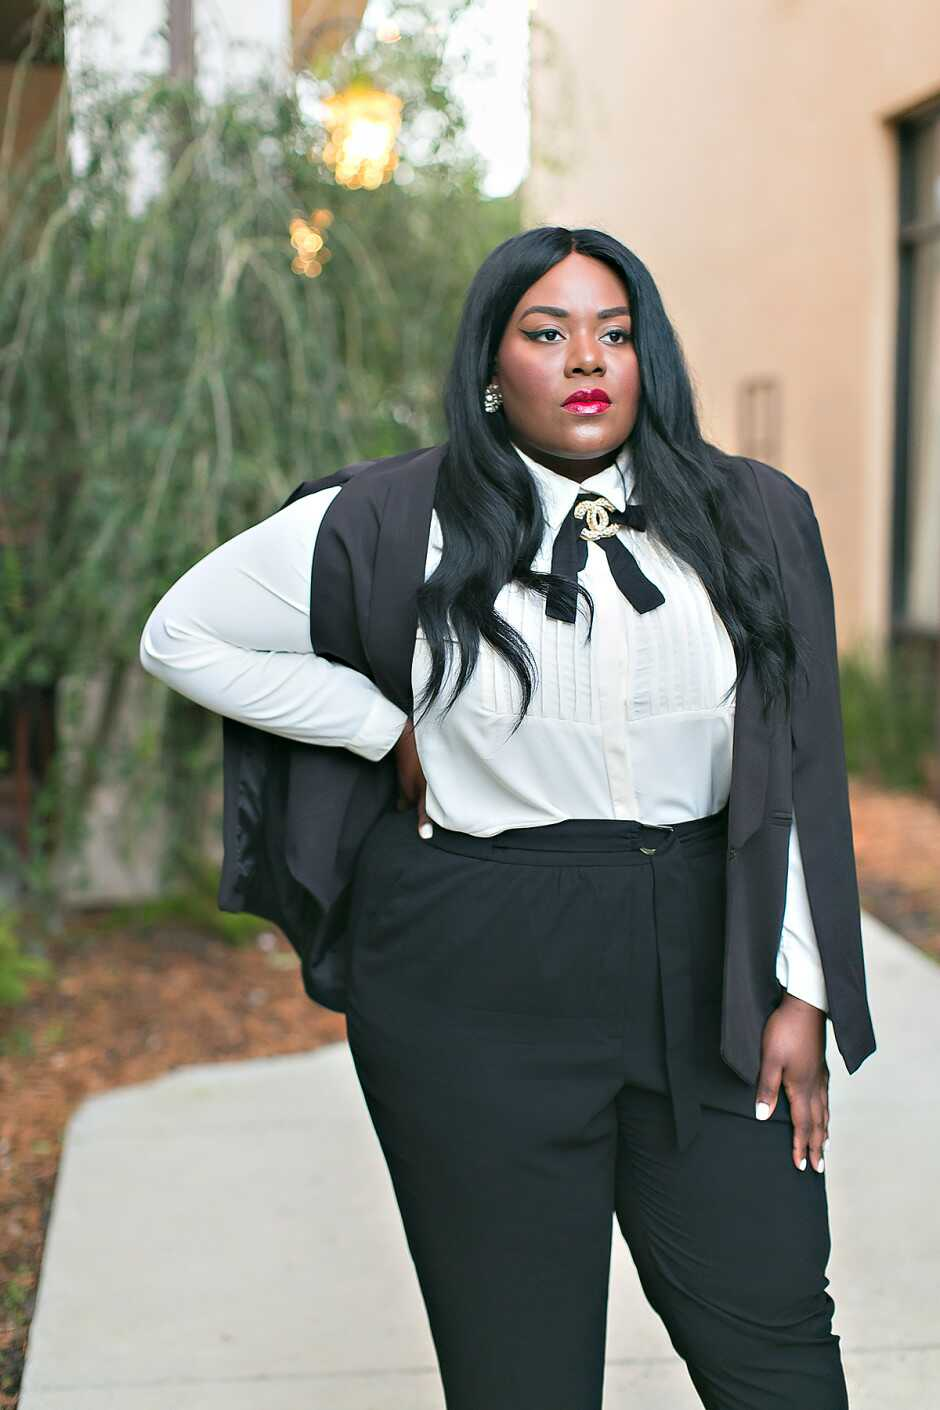 These Outfits Will Have The Plus Sized Females Looking 'Bad and Boujie'!